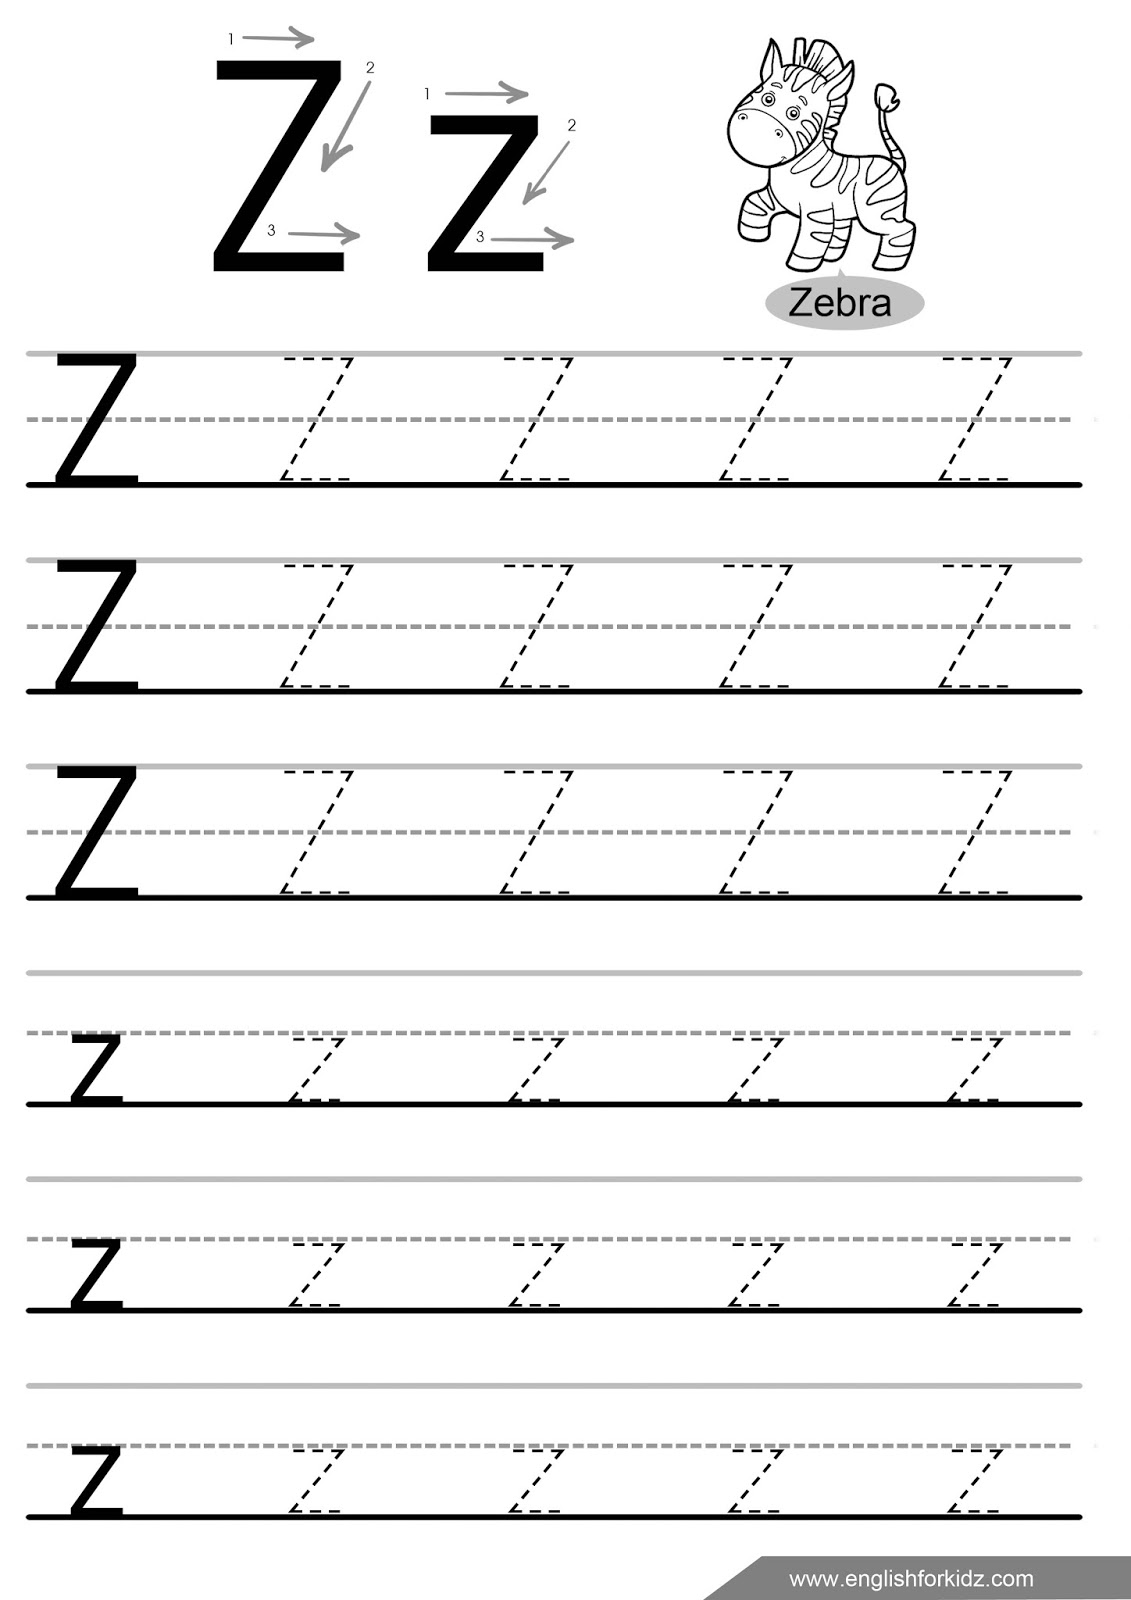 Worksheet Letter Z Worksheet Worksheet Fun Worksheet